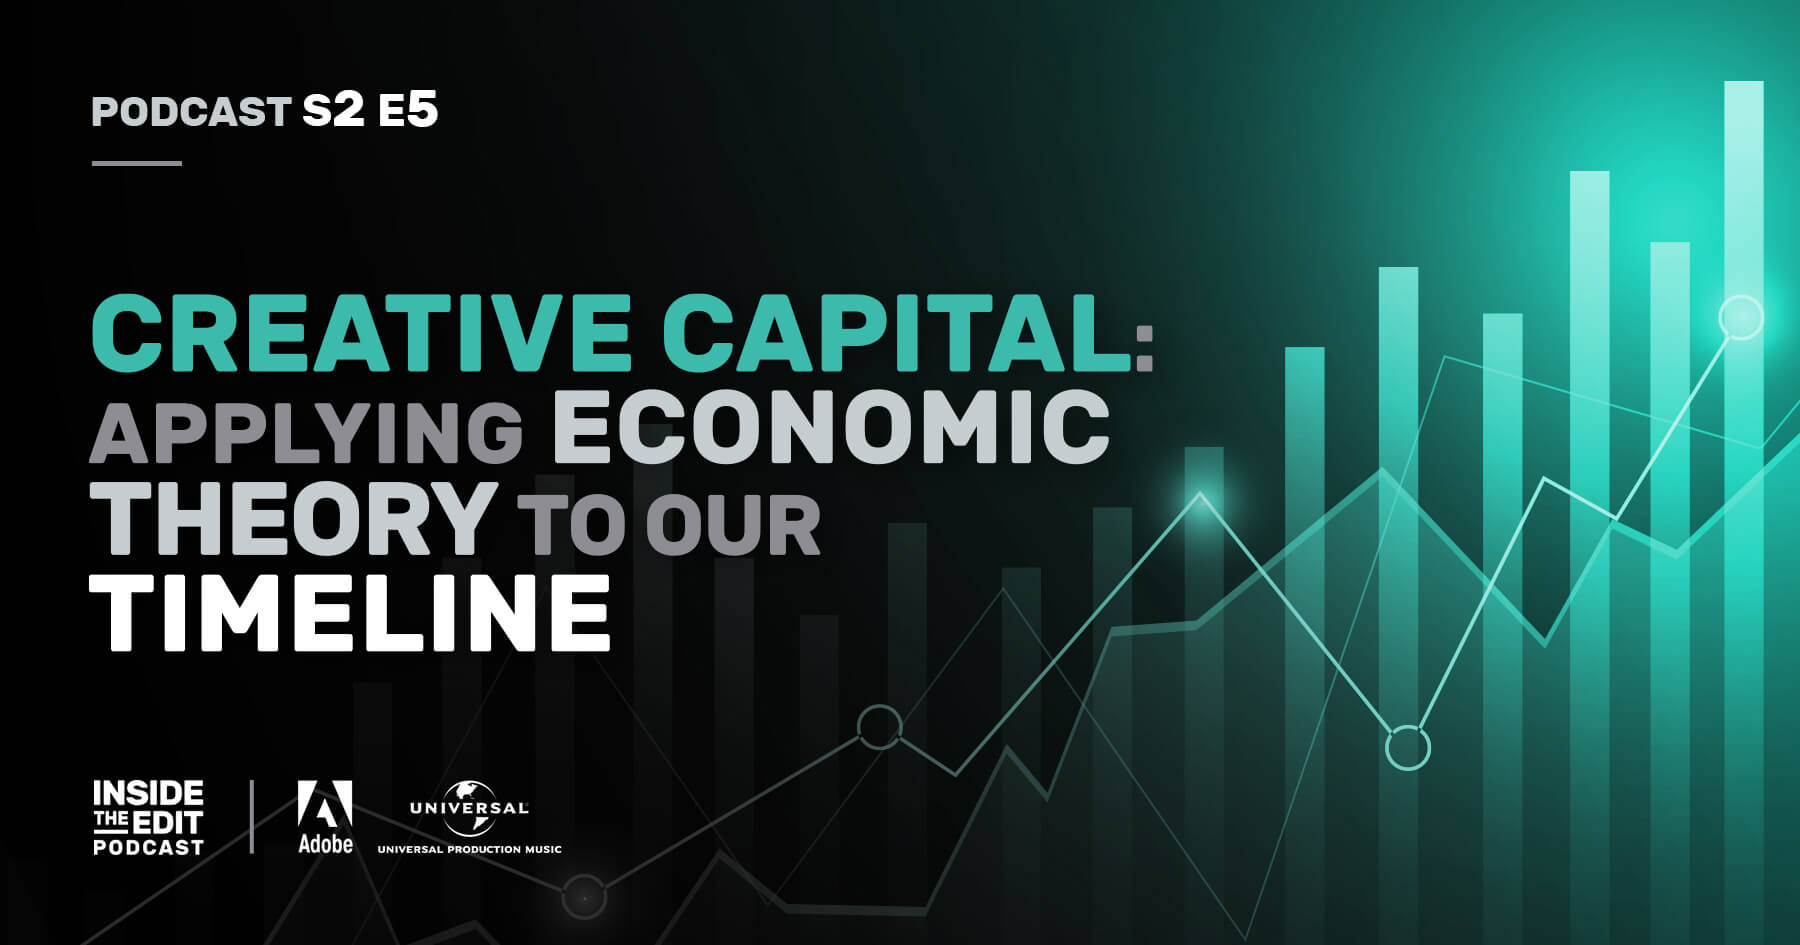 Creative Capital: Applying Economic Theory To Our Timeline